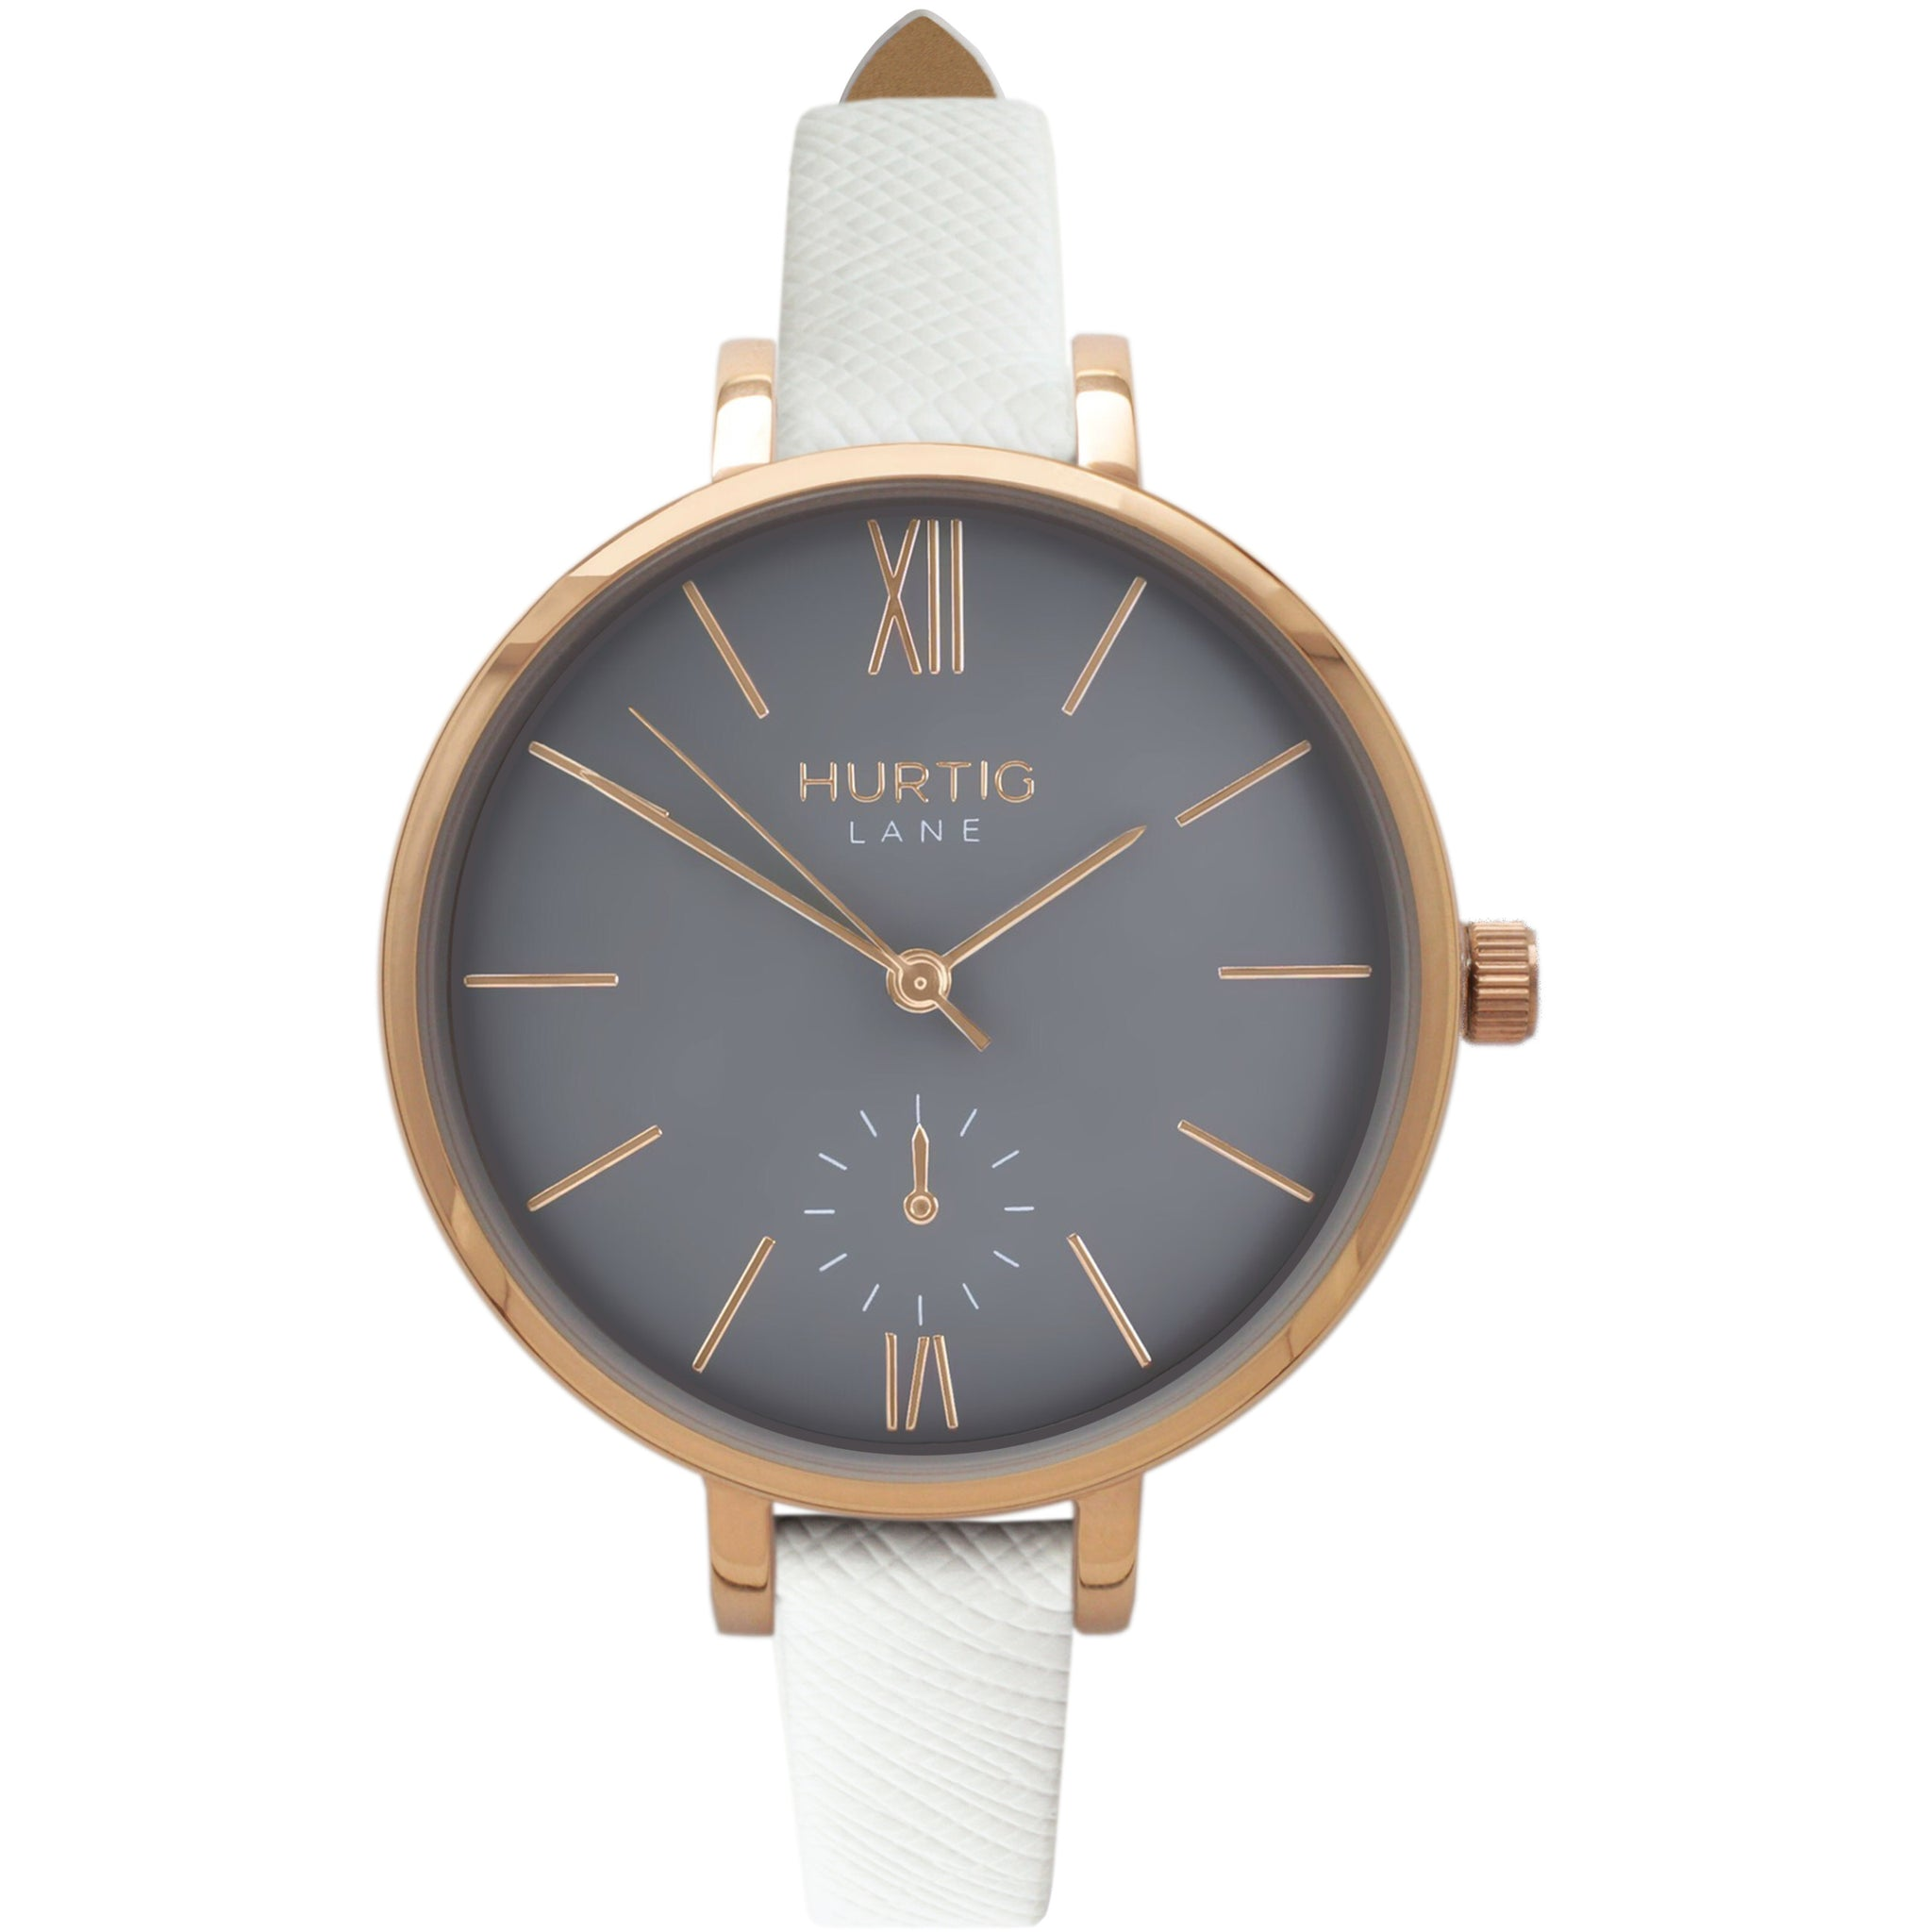 AMALFI WOMEN'S WATCH, GOLD/GREY/WHITE